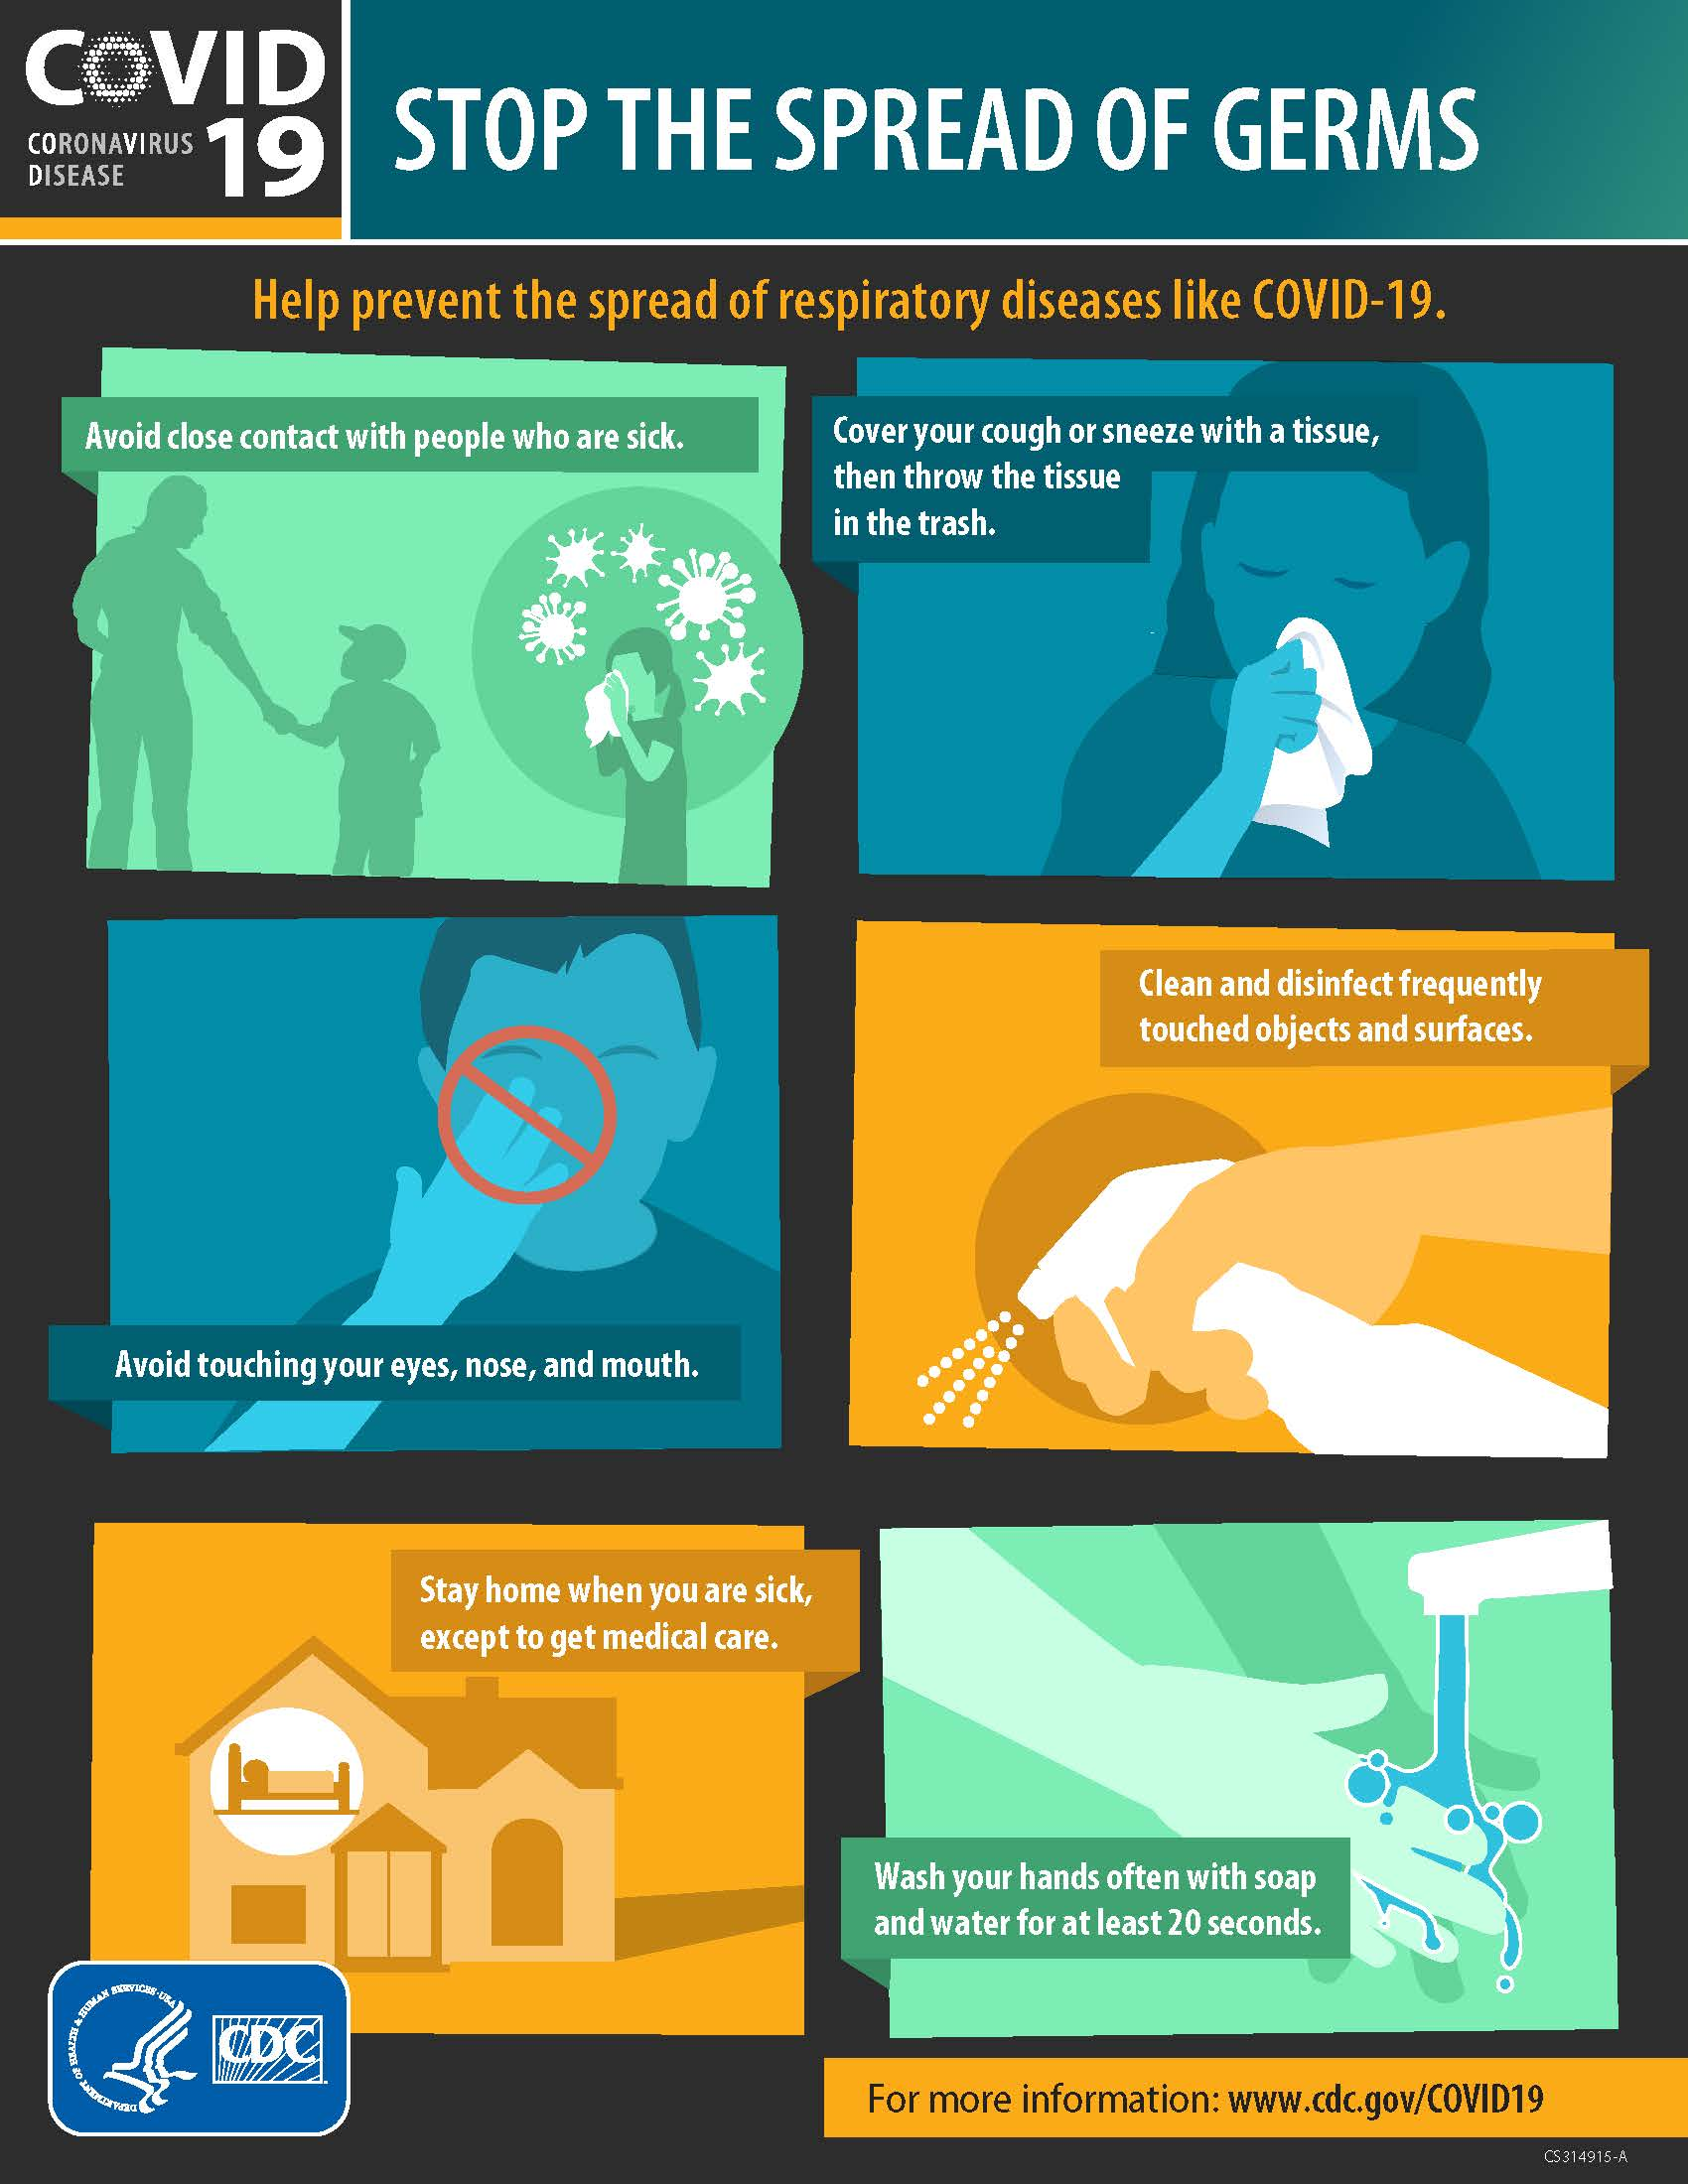 CDC-Poster-Stop-the-spread-of-germs